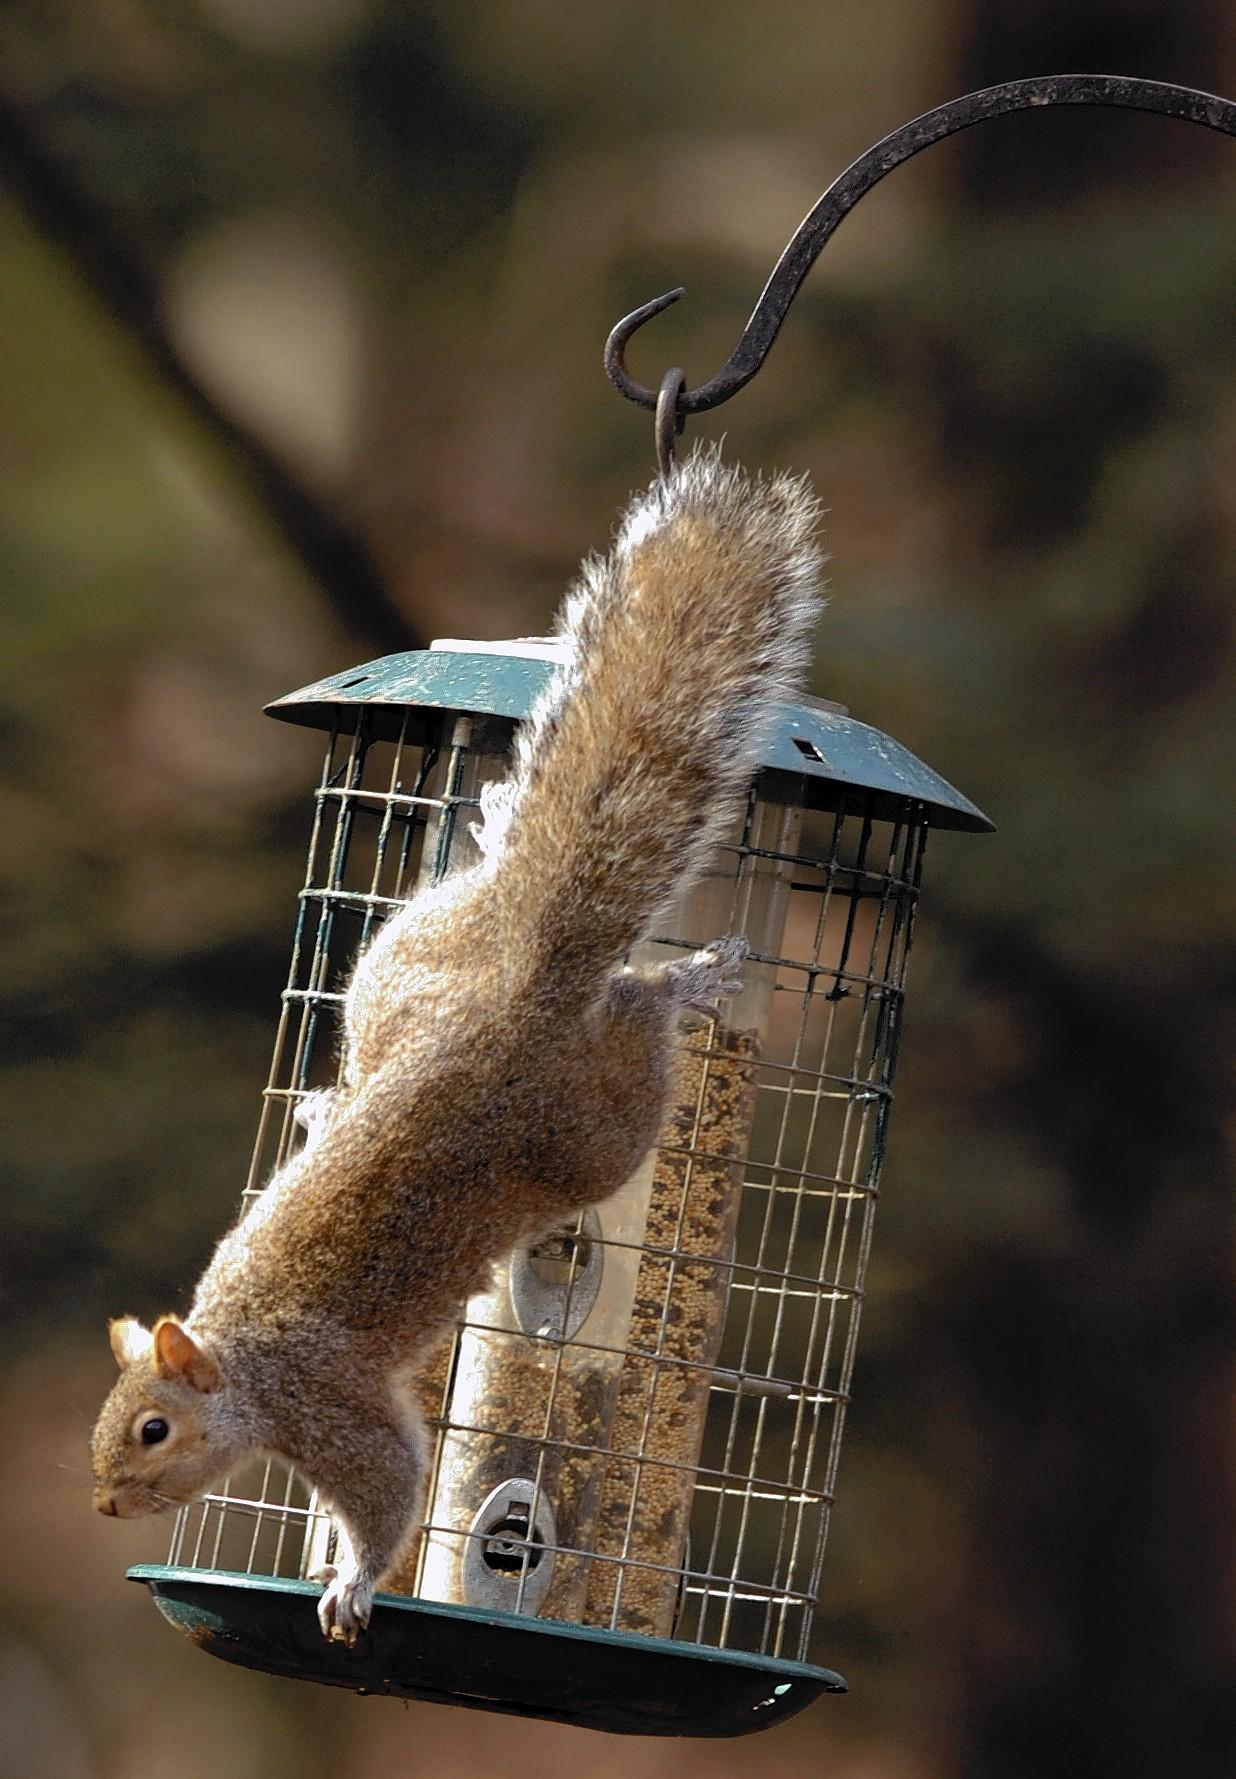 Squirrels can be clever when it comes to finding ways to reach squirrel-proof bird feeders.